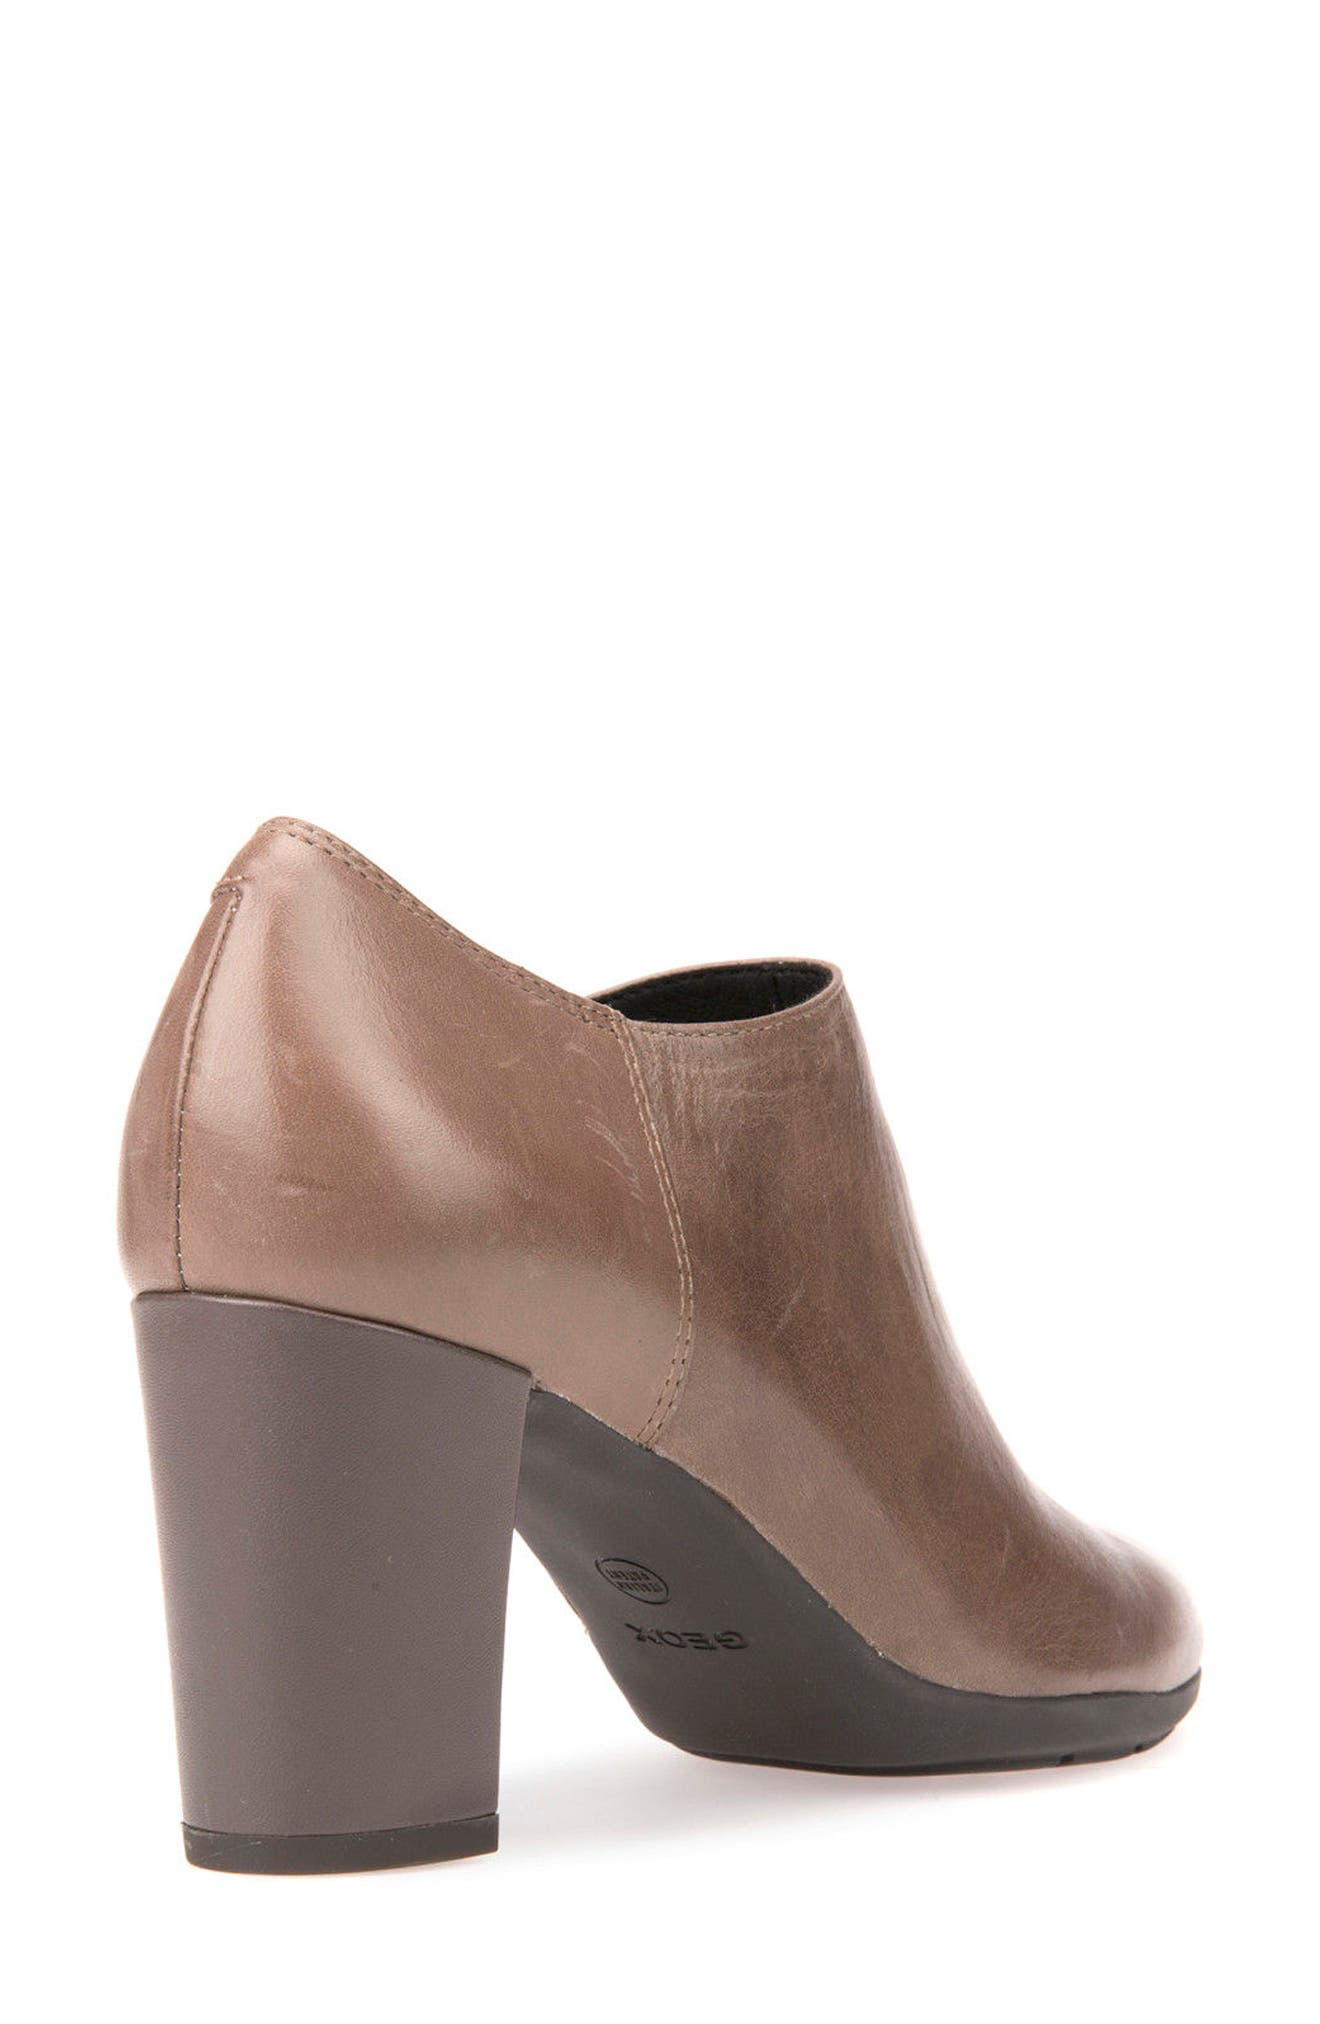 Annya Bootie,                             Alternate thumbnail 5, color,                             Taupe Leather